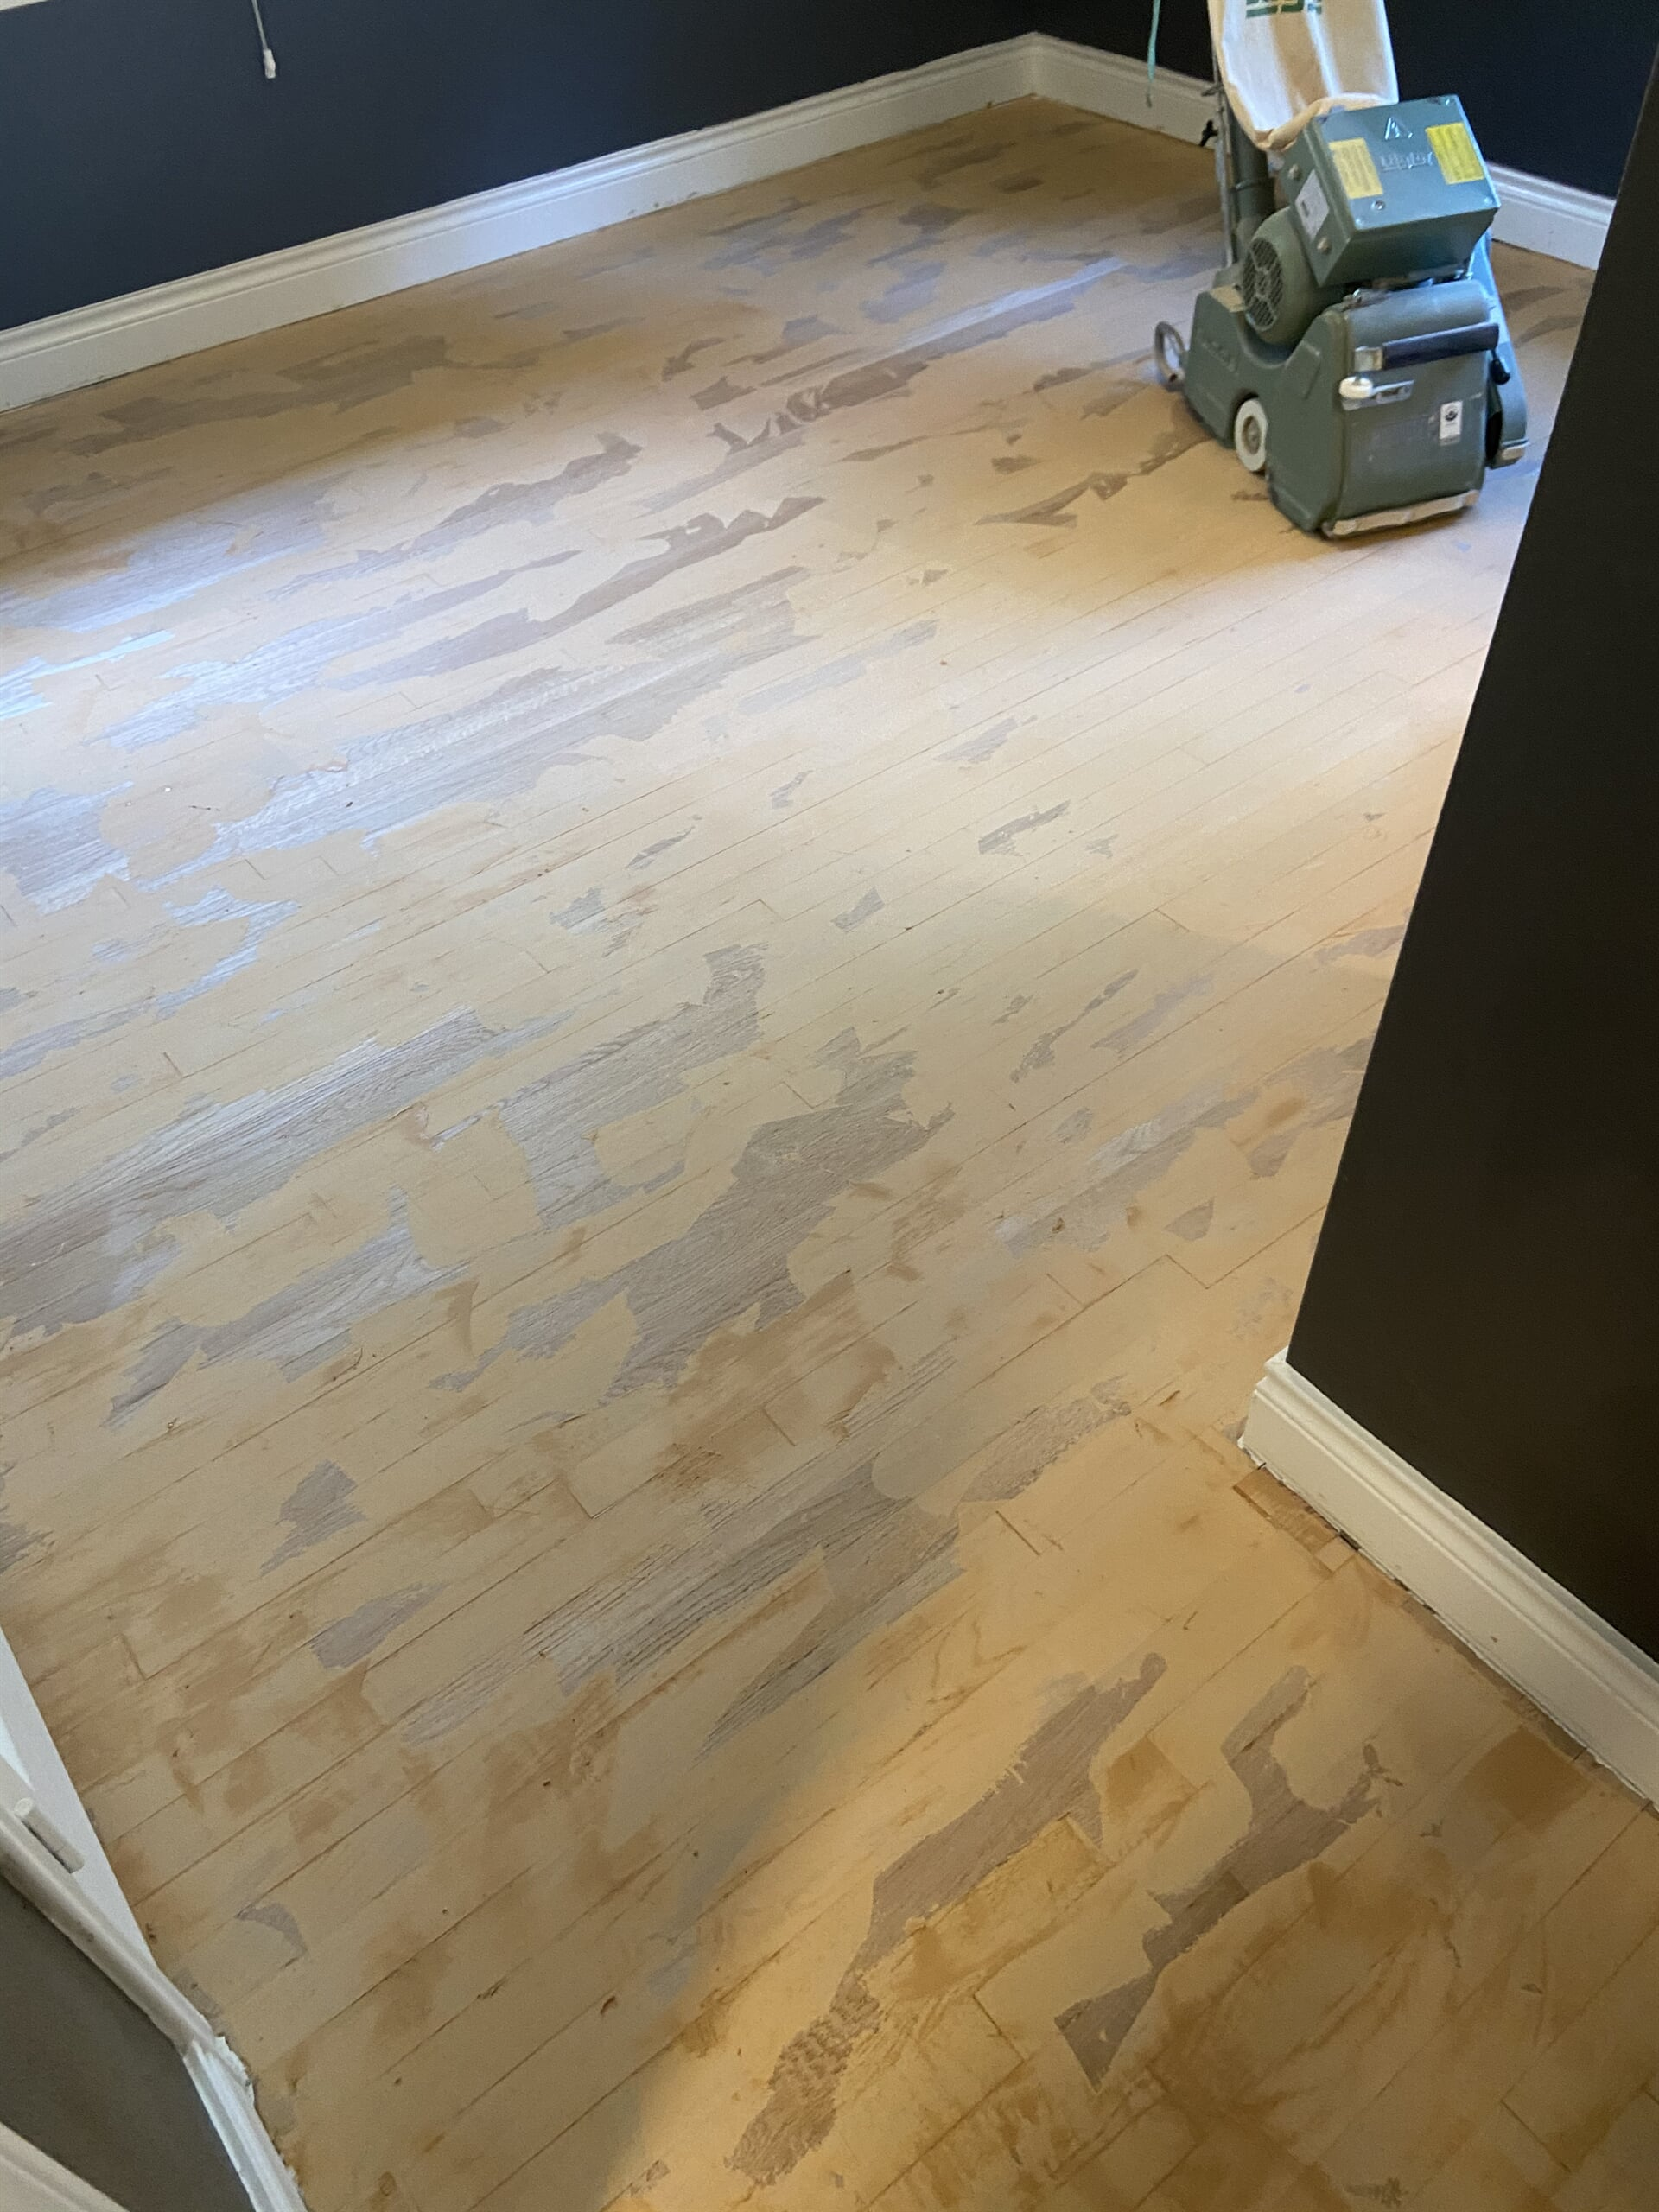 Hardwood refinishing from Houston Floor Installation Services in Spring, TX